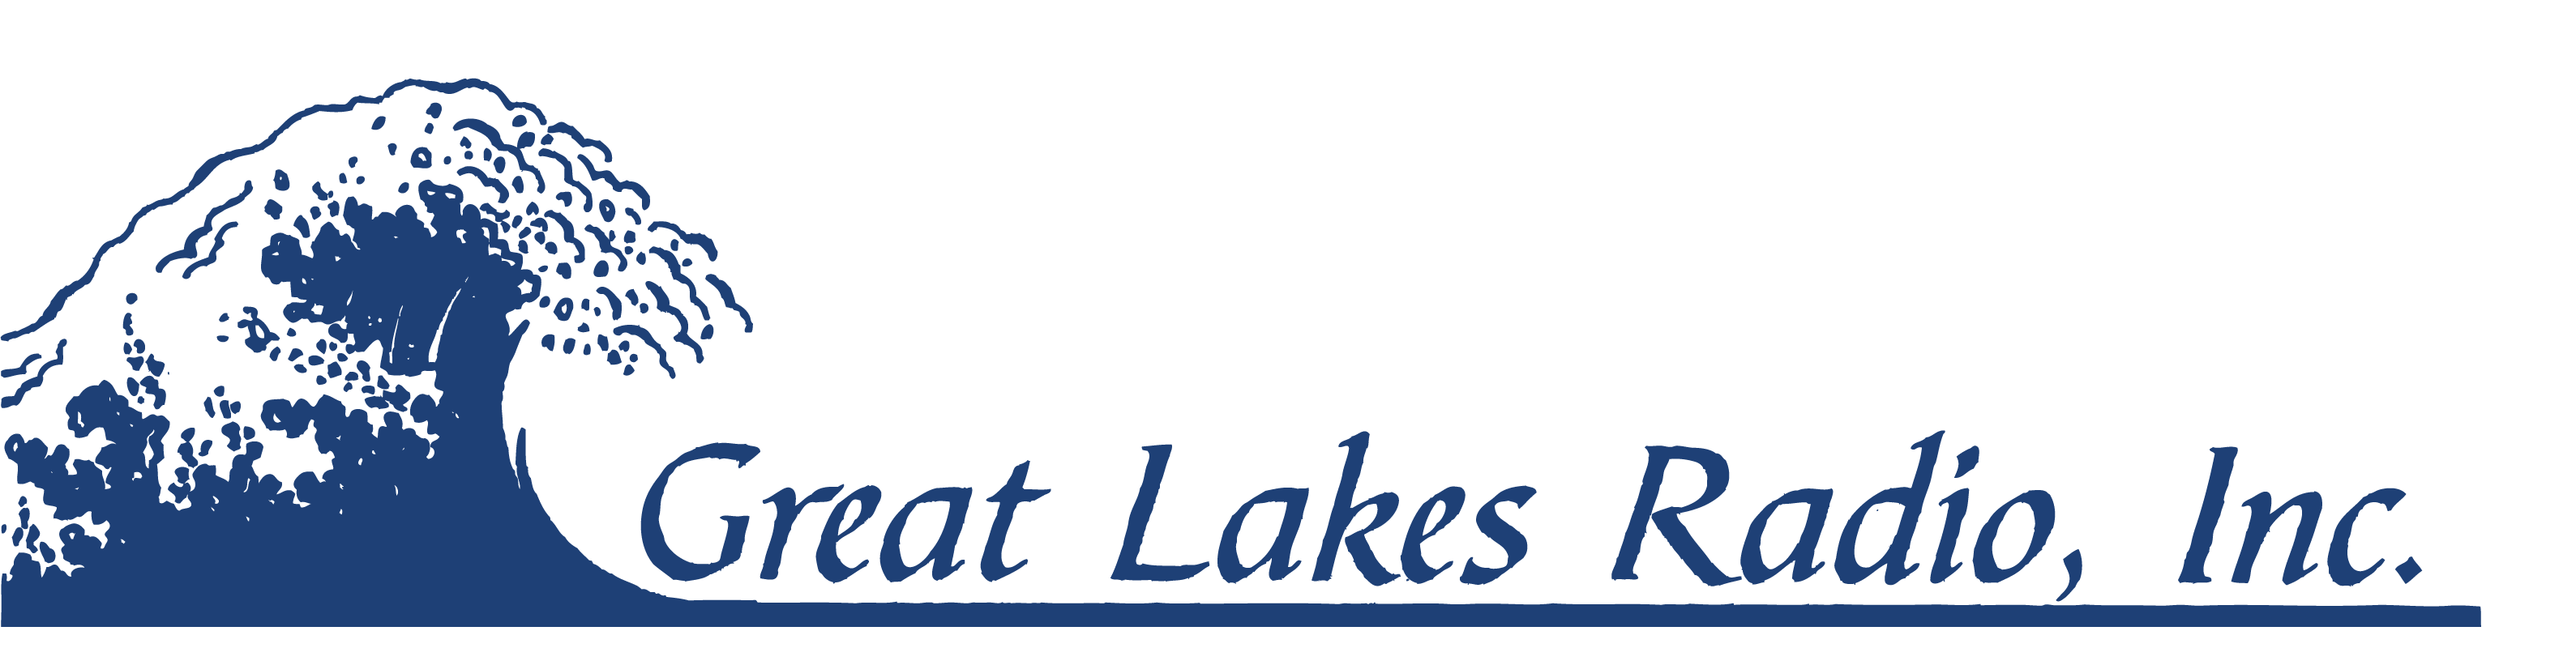 Great Lakes Radio Logo